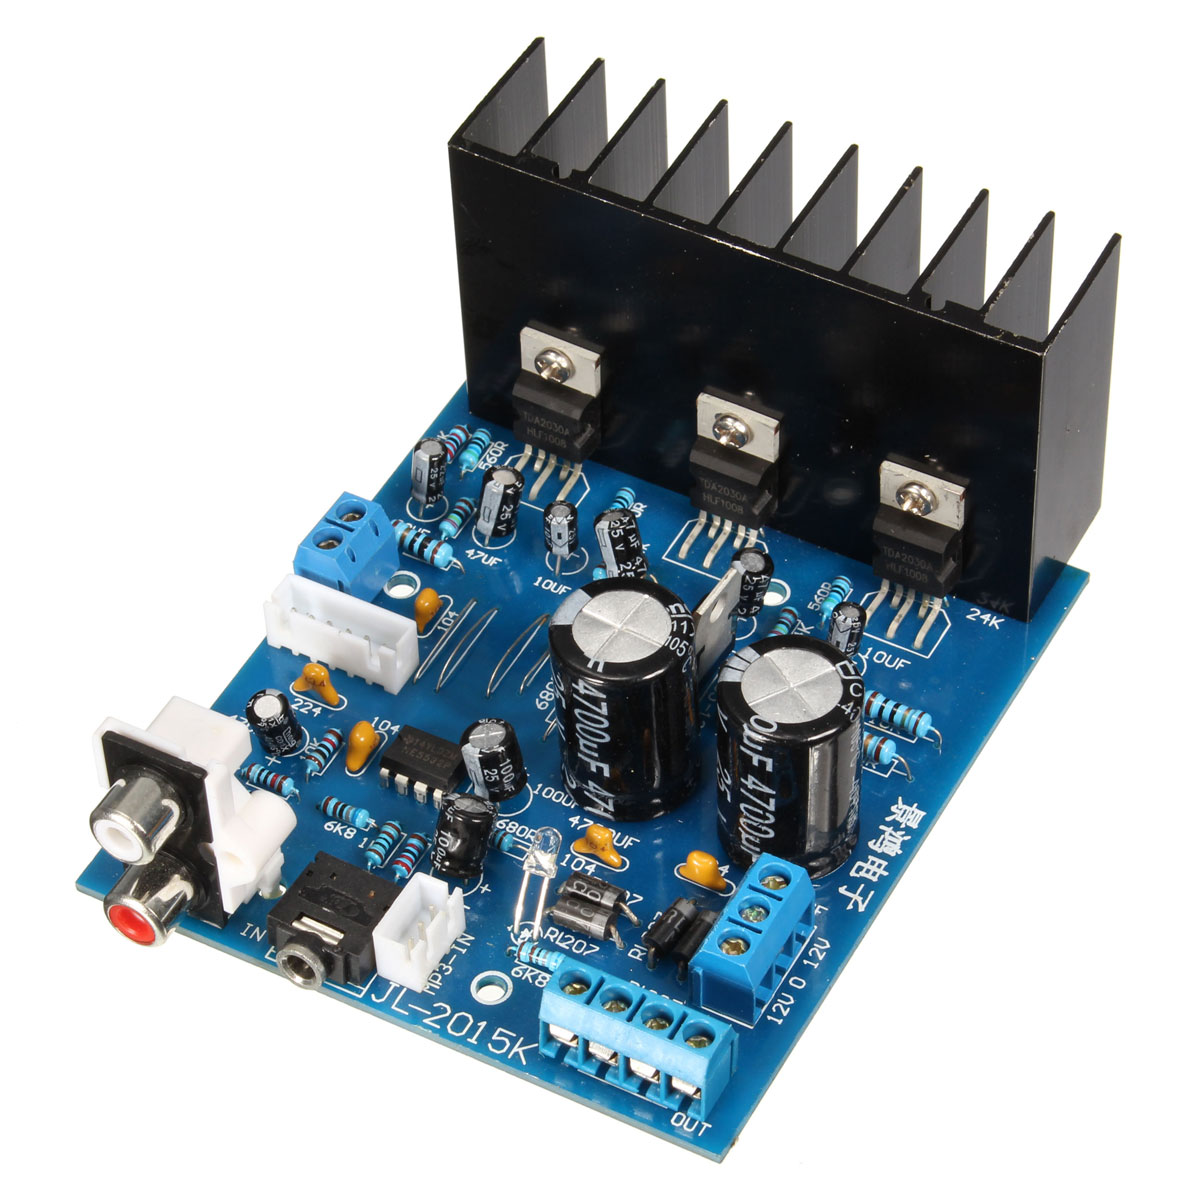 1pcs Tda2030a 21 Subwoofer Amplifier Board Ac 12v 3 Channel Electronics Module 18w 18 W With 6pin Cable In From Consumer On